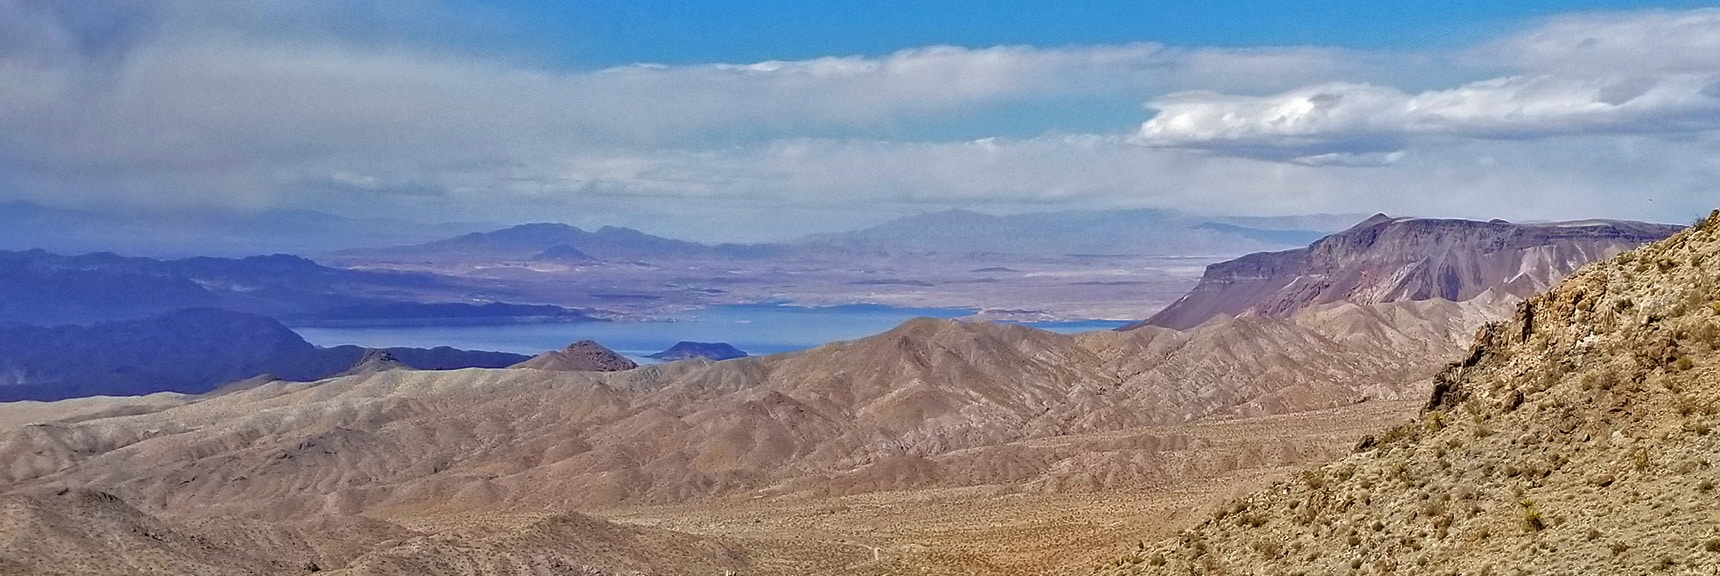 Higher View of Lake Mead, Frenchman Mt., Gass Peak, Sheep Range and Fortification Hill | Mt Wilson, Black Mountains, Arizona, Lake Mead National Recreation Area